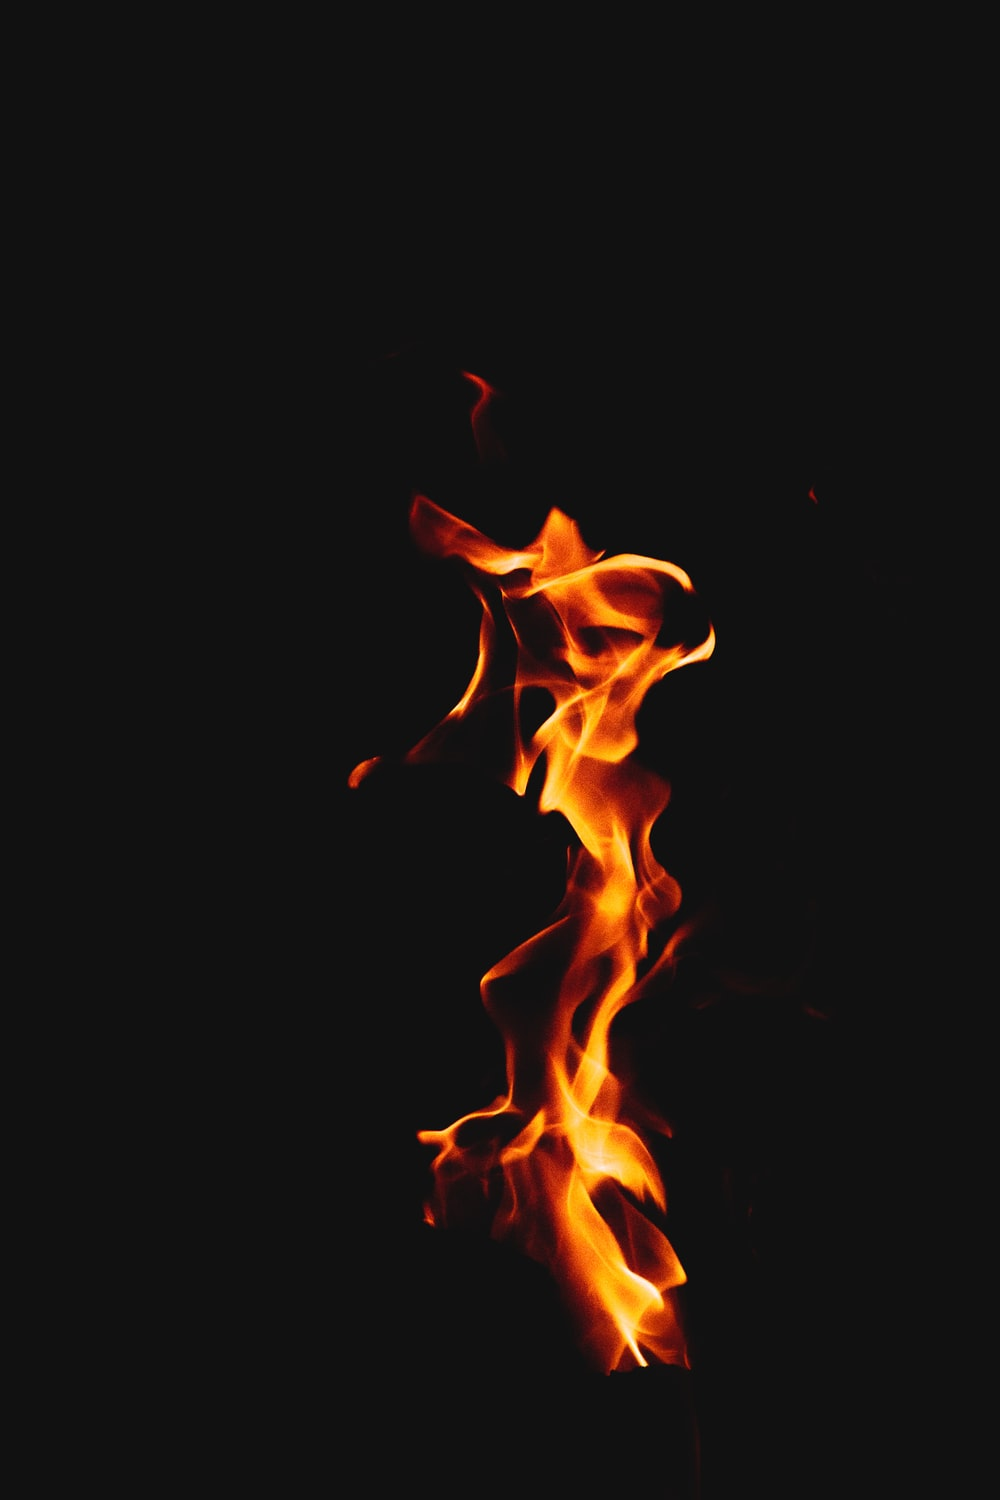 500+ Flame Pictures | Download Free Images on Unsplash